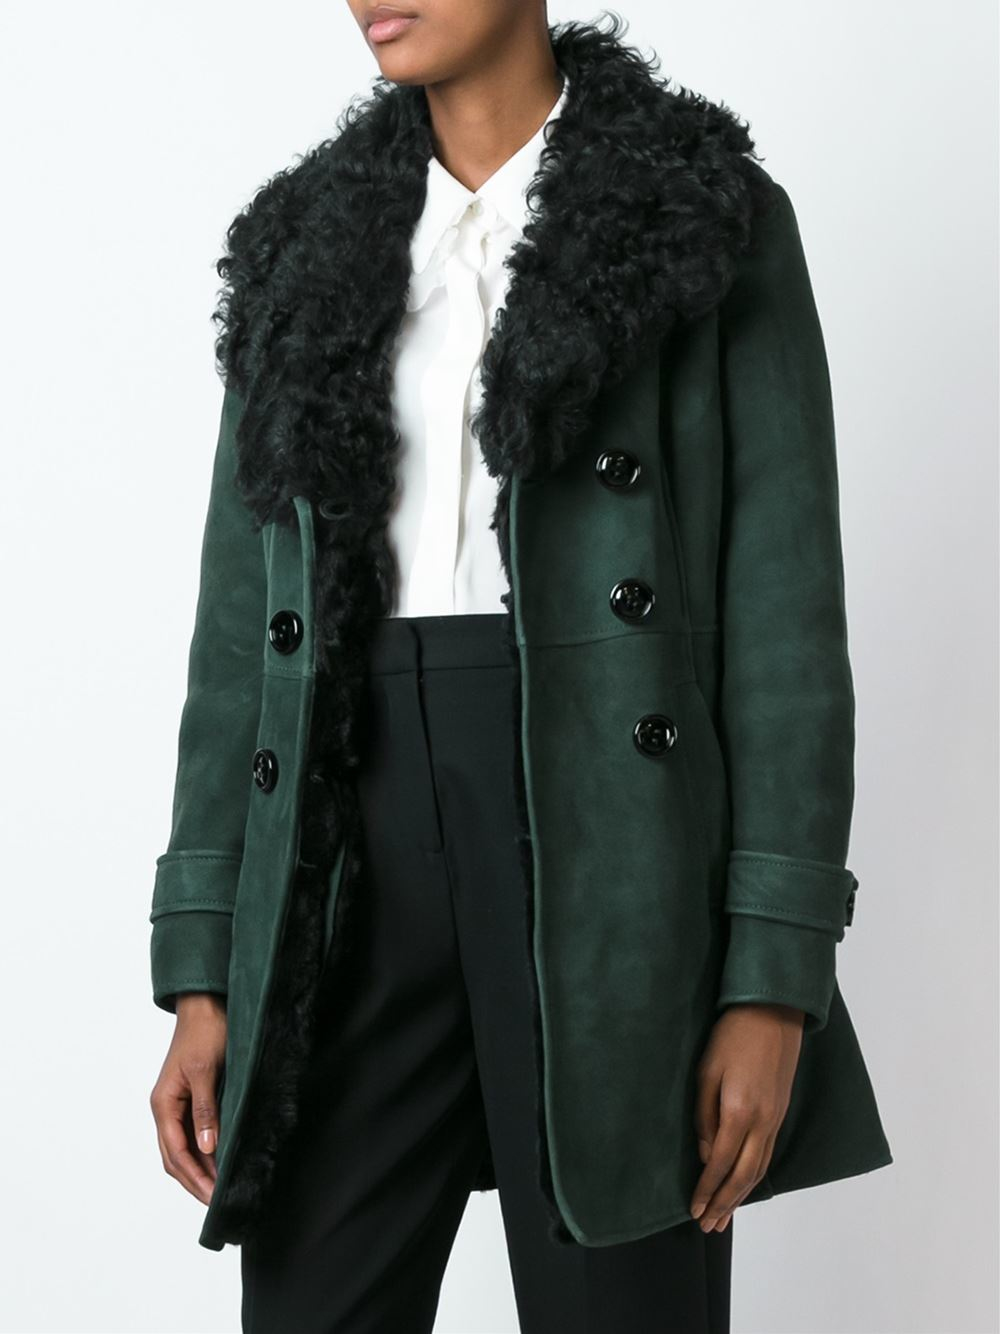 Red valentino Shearling Coat in Green | Lyst